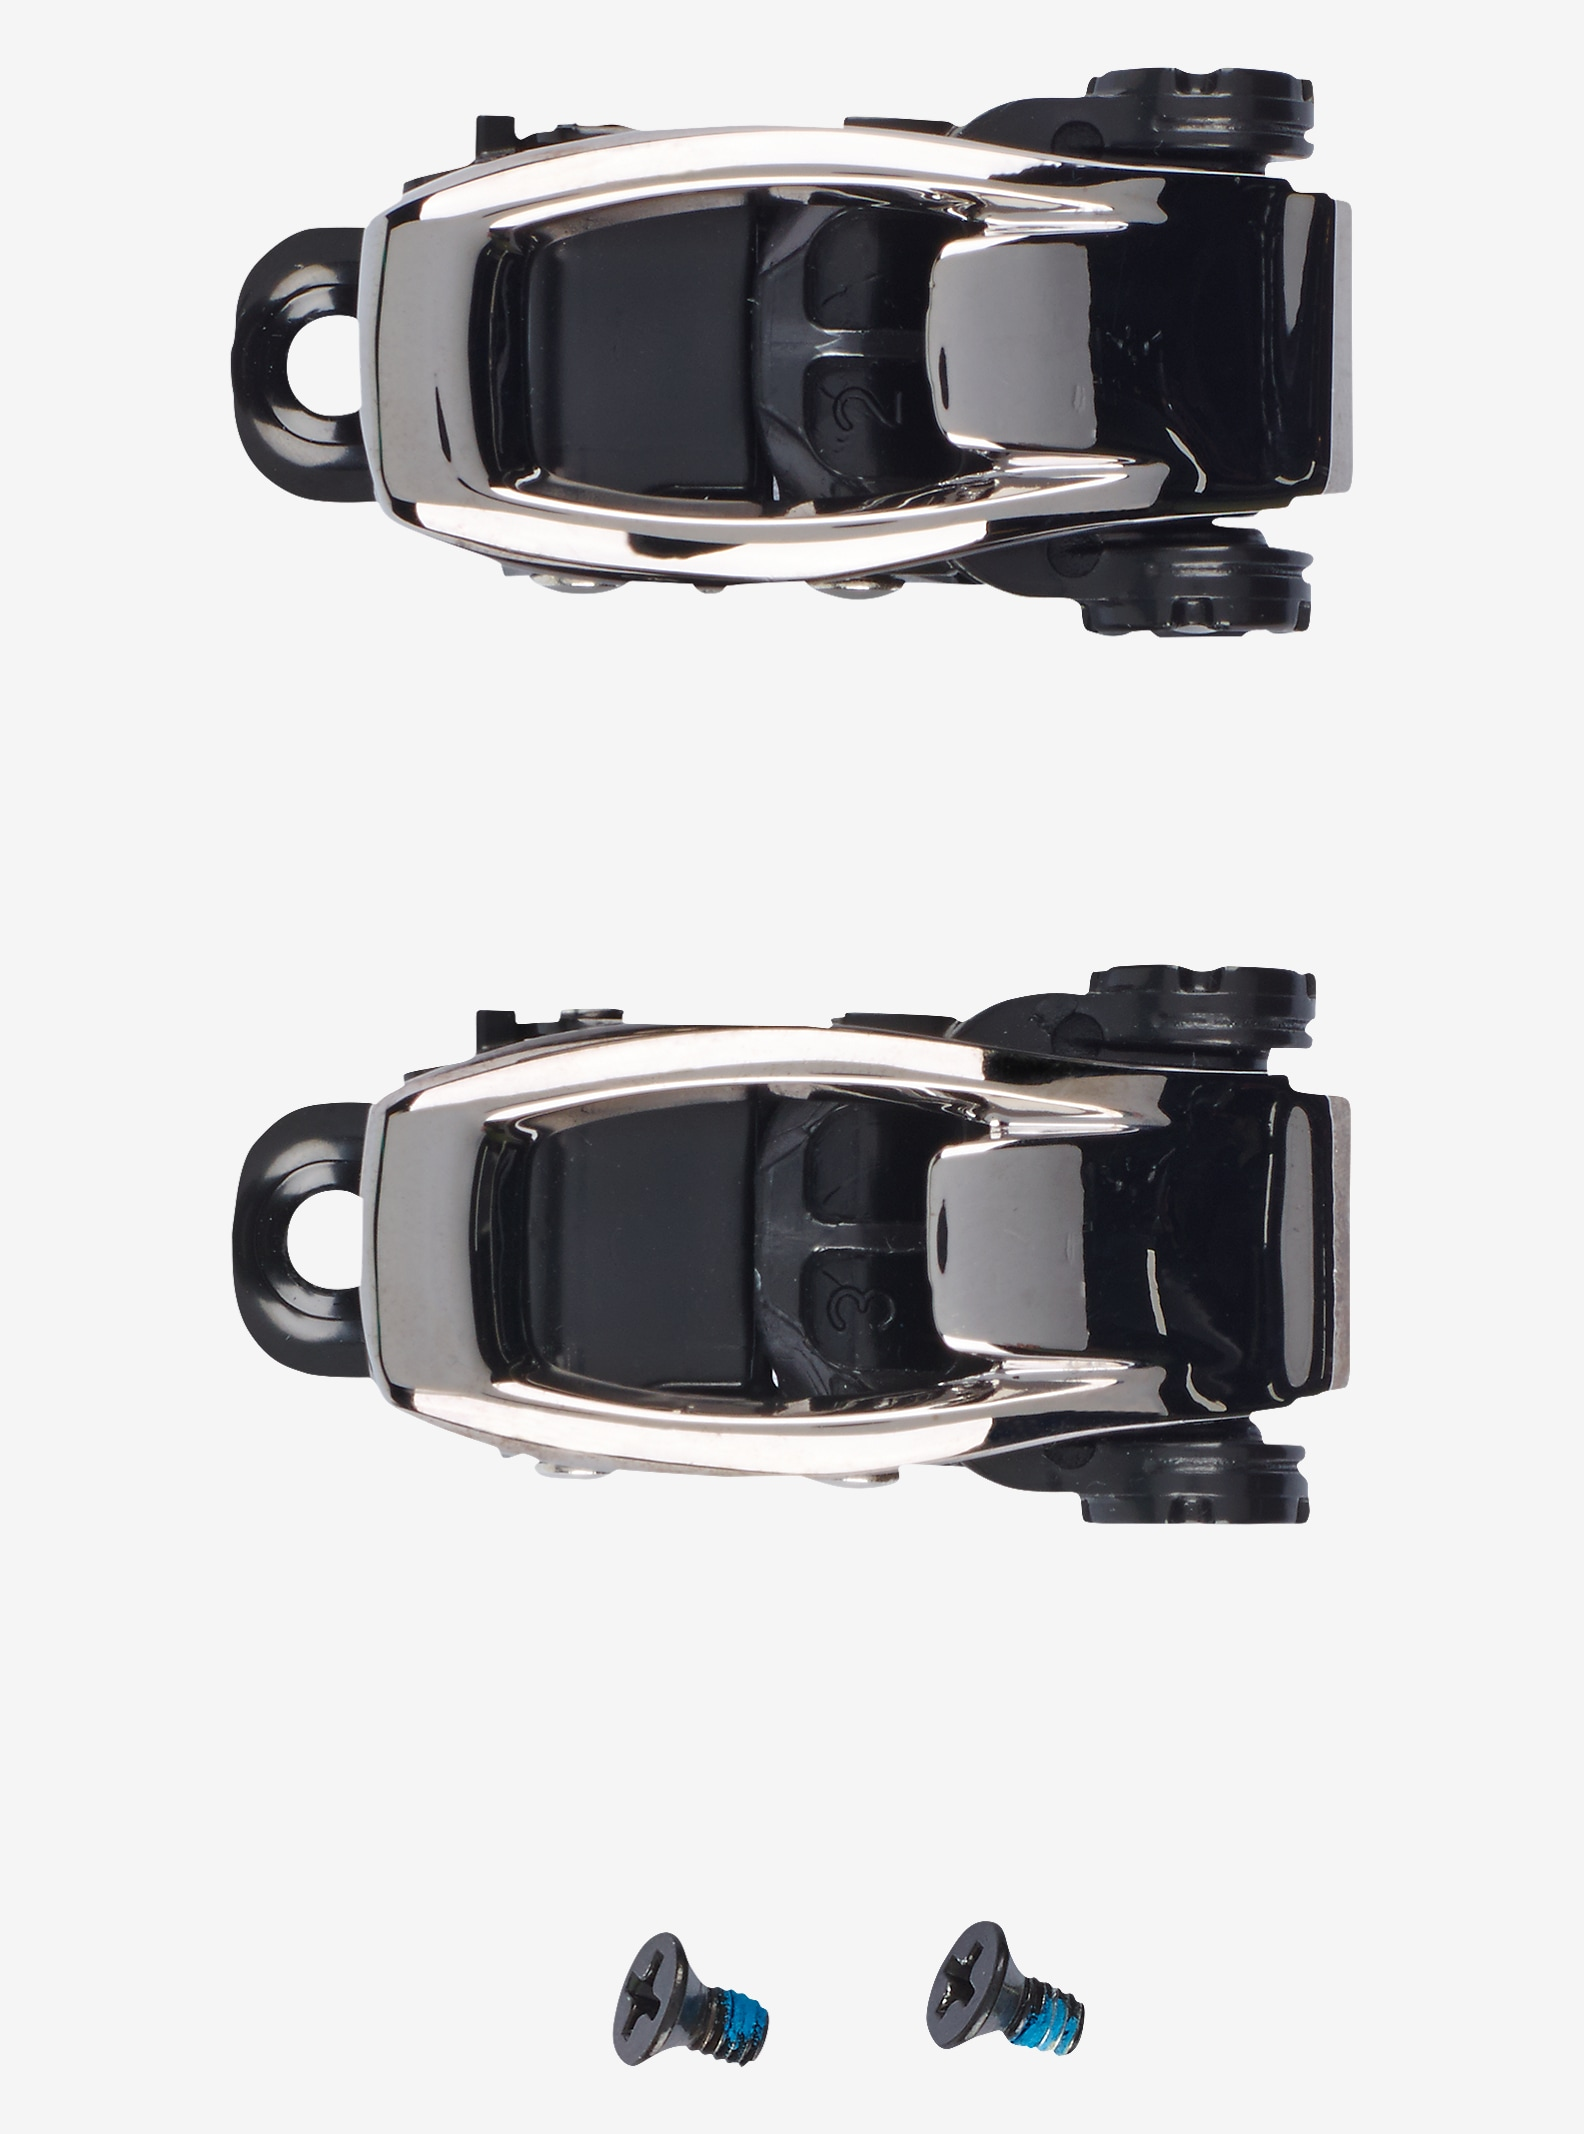 Burton Toe Buckle Replacement Set shown in Black